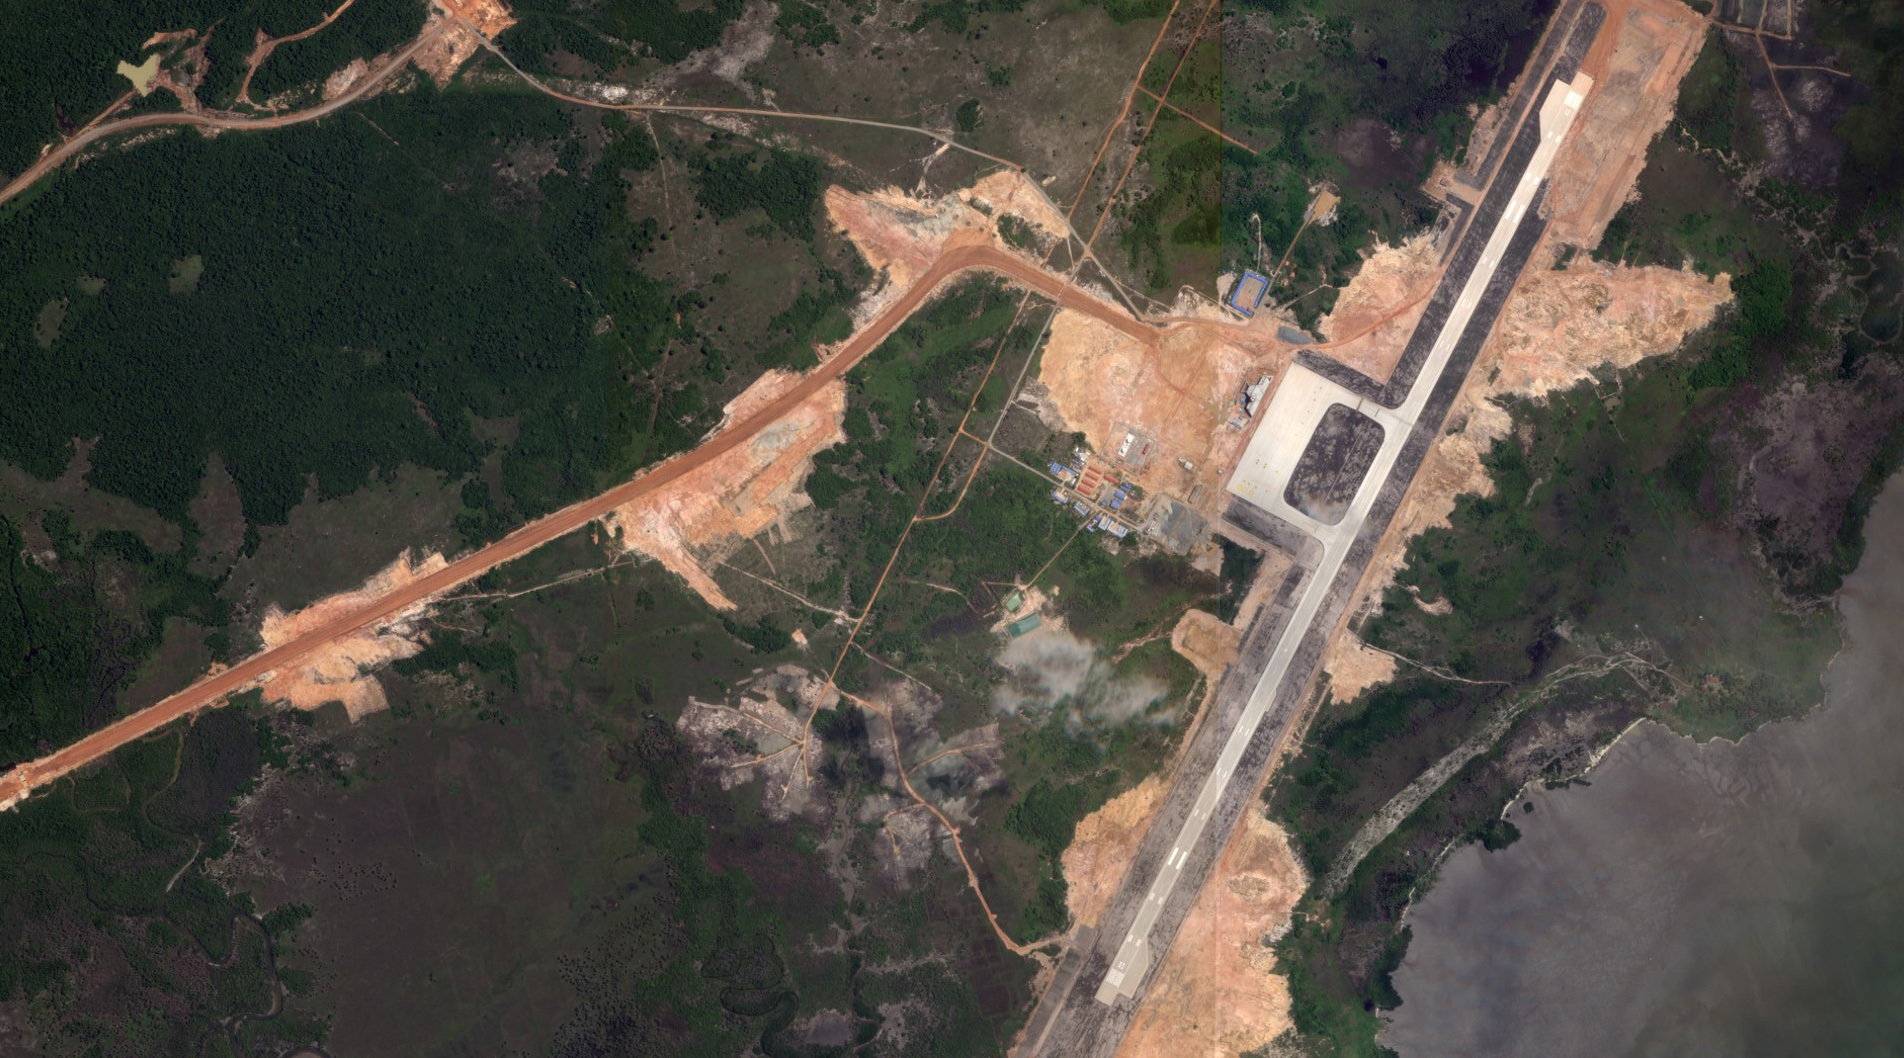 Cambodia's Dara Sakor airport is shown under construction by China's United Development Group (UDG) in a June 9, 2020 photo.